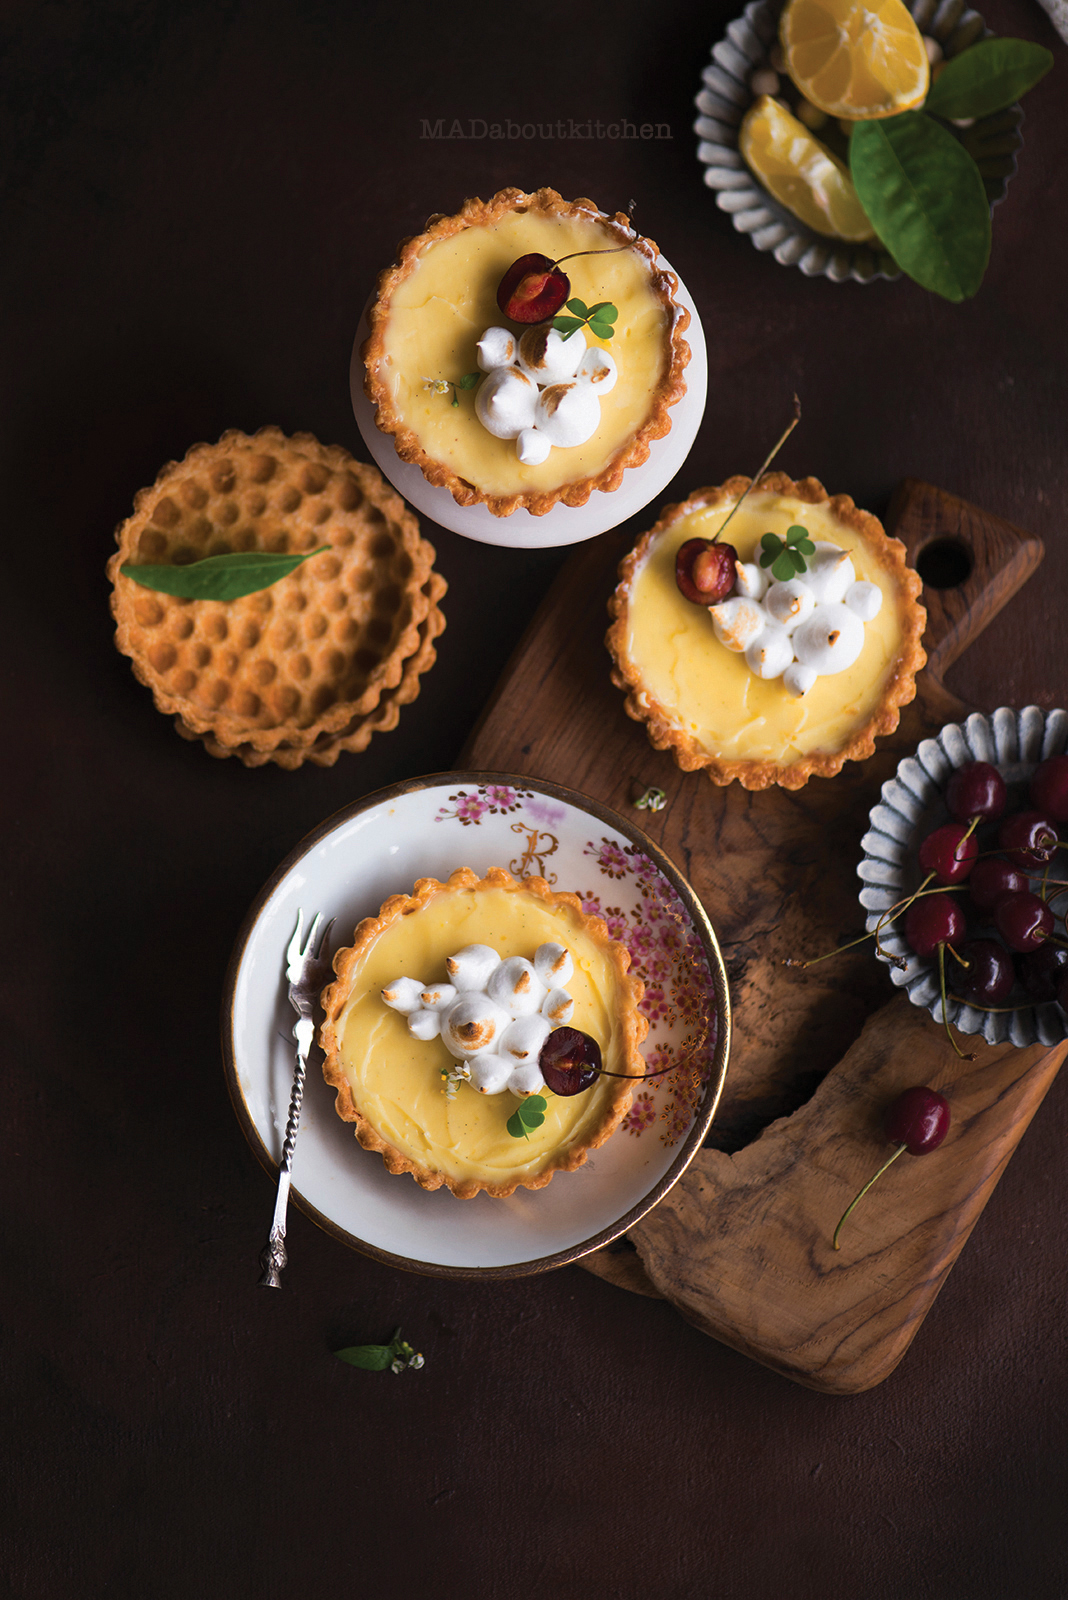 This is a recipe for the basic Shortcrust pastry that you can use for Tart shells, Quiche or Pies. Shortcrust pastry is one of the basic pastries.